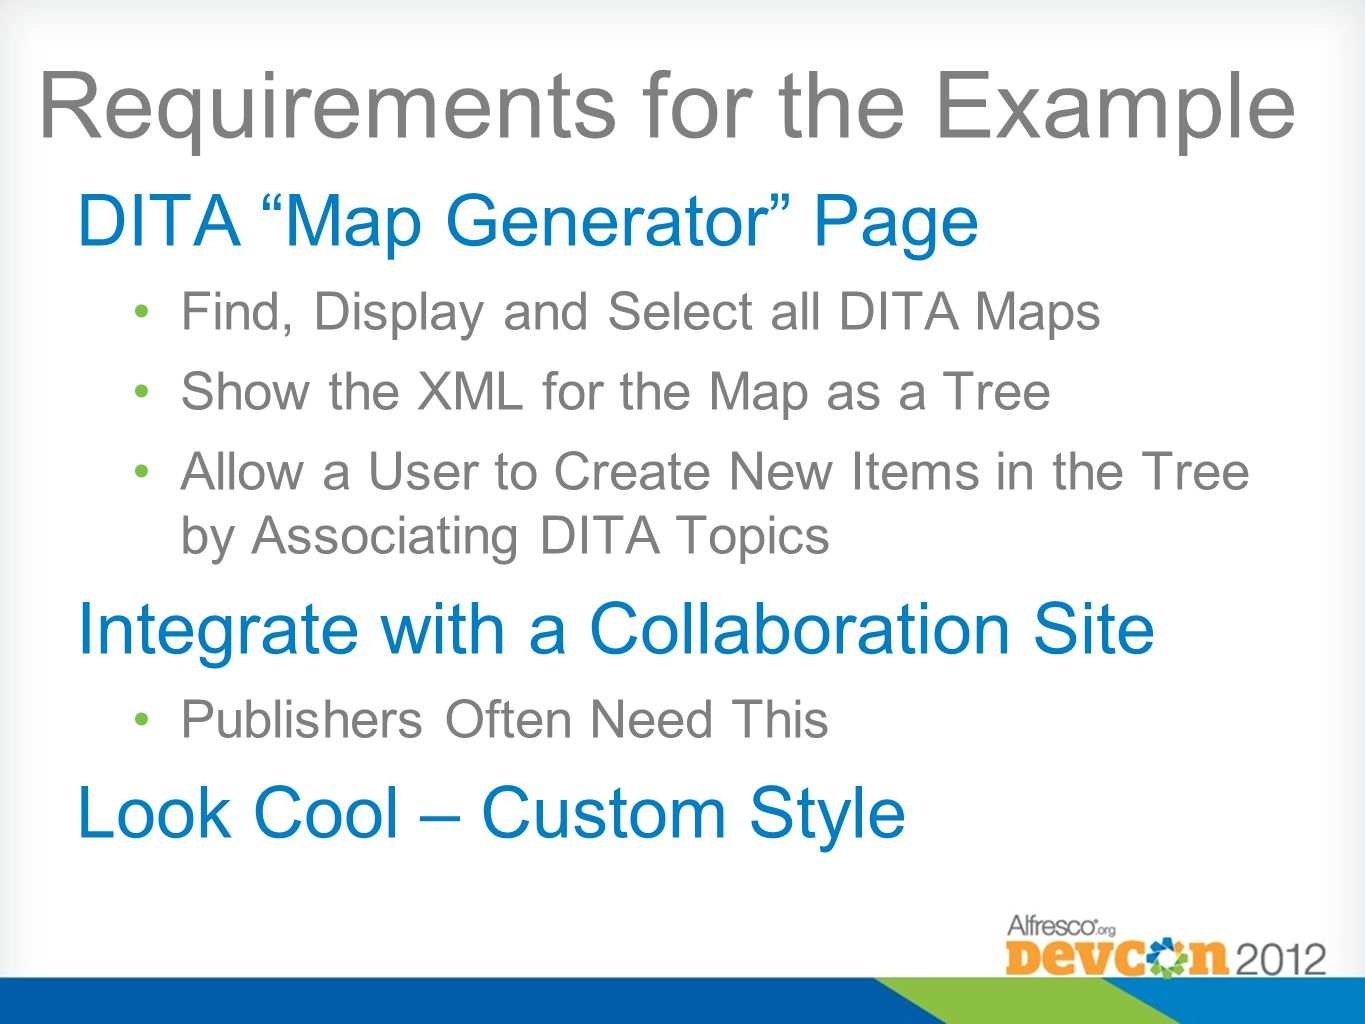 Requirements for the Example DITA Map Generator Page Find, Display and Select all DITA Maps Show the XML for the Map as a Tree Allow a User to Create New Items in the Tree by Associating DITA Topics Integrate with a Collaboration Site Publishers Often Need This Look Cool – Custom Style